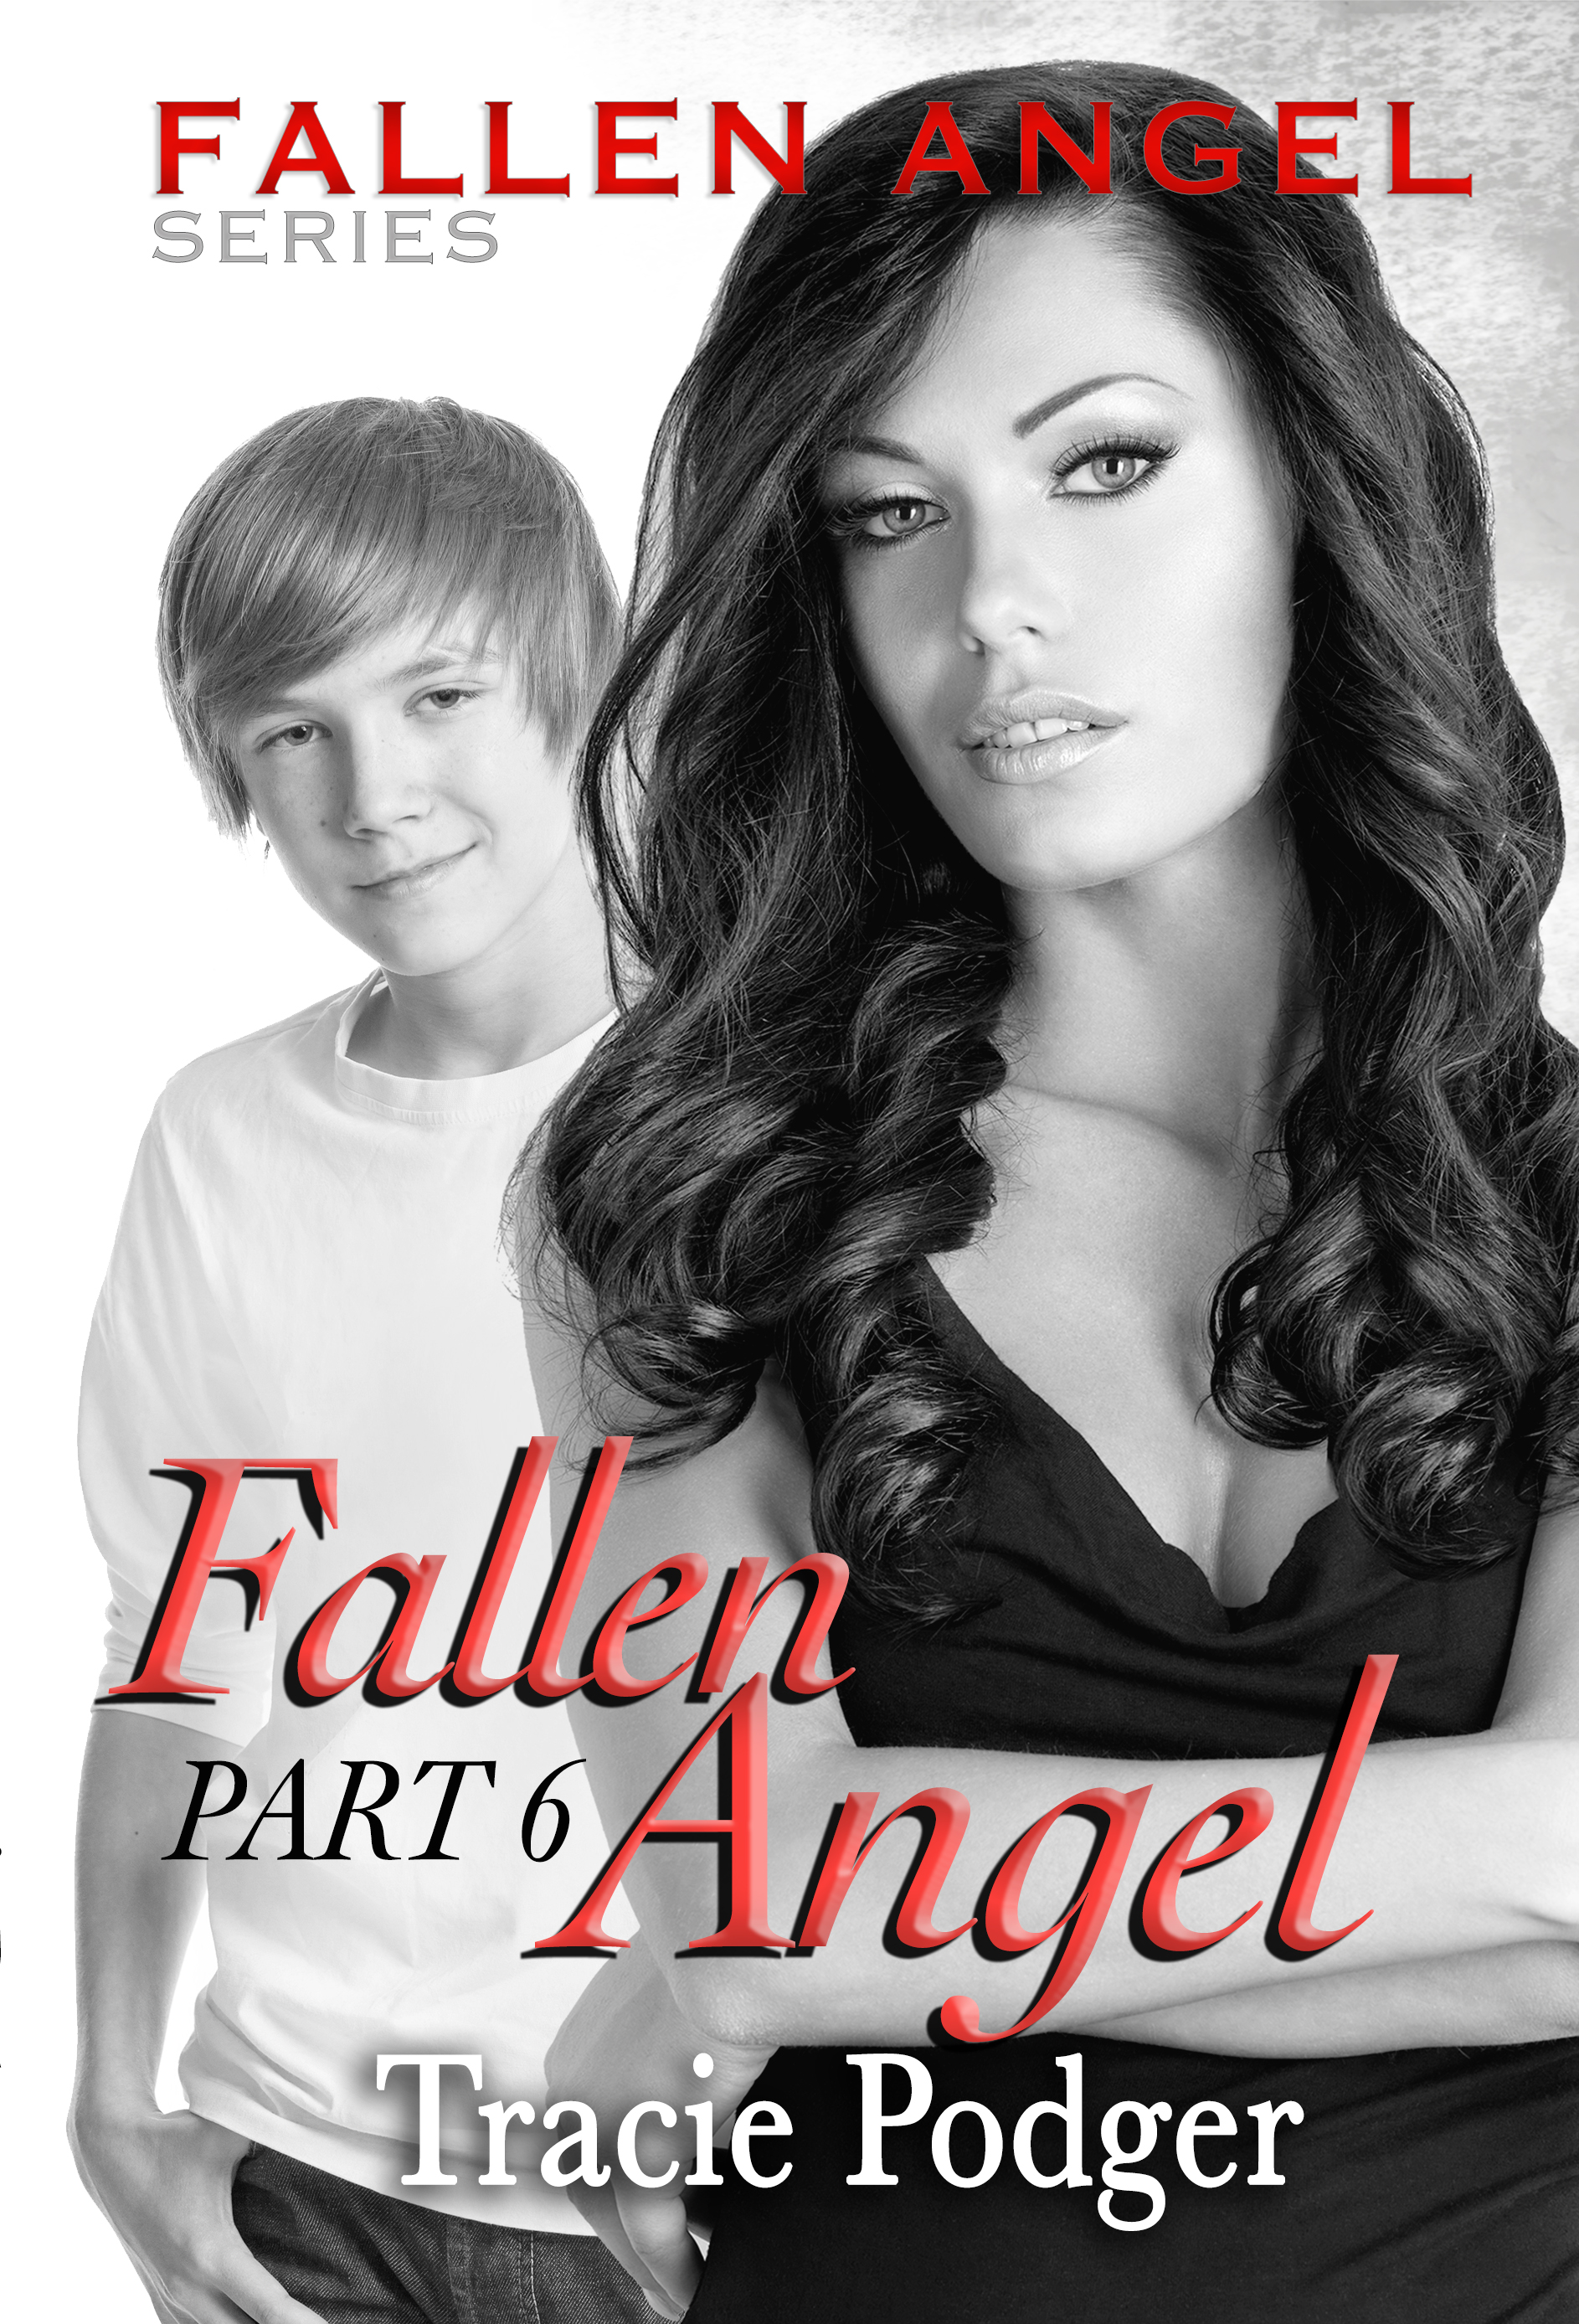 FALLEN ANGEL Part 6 ecover